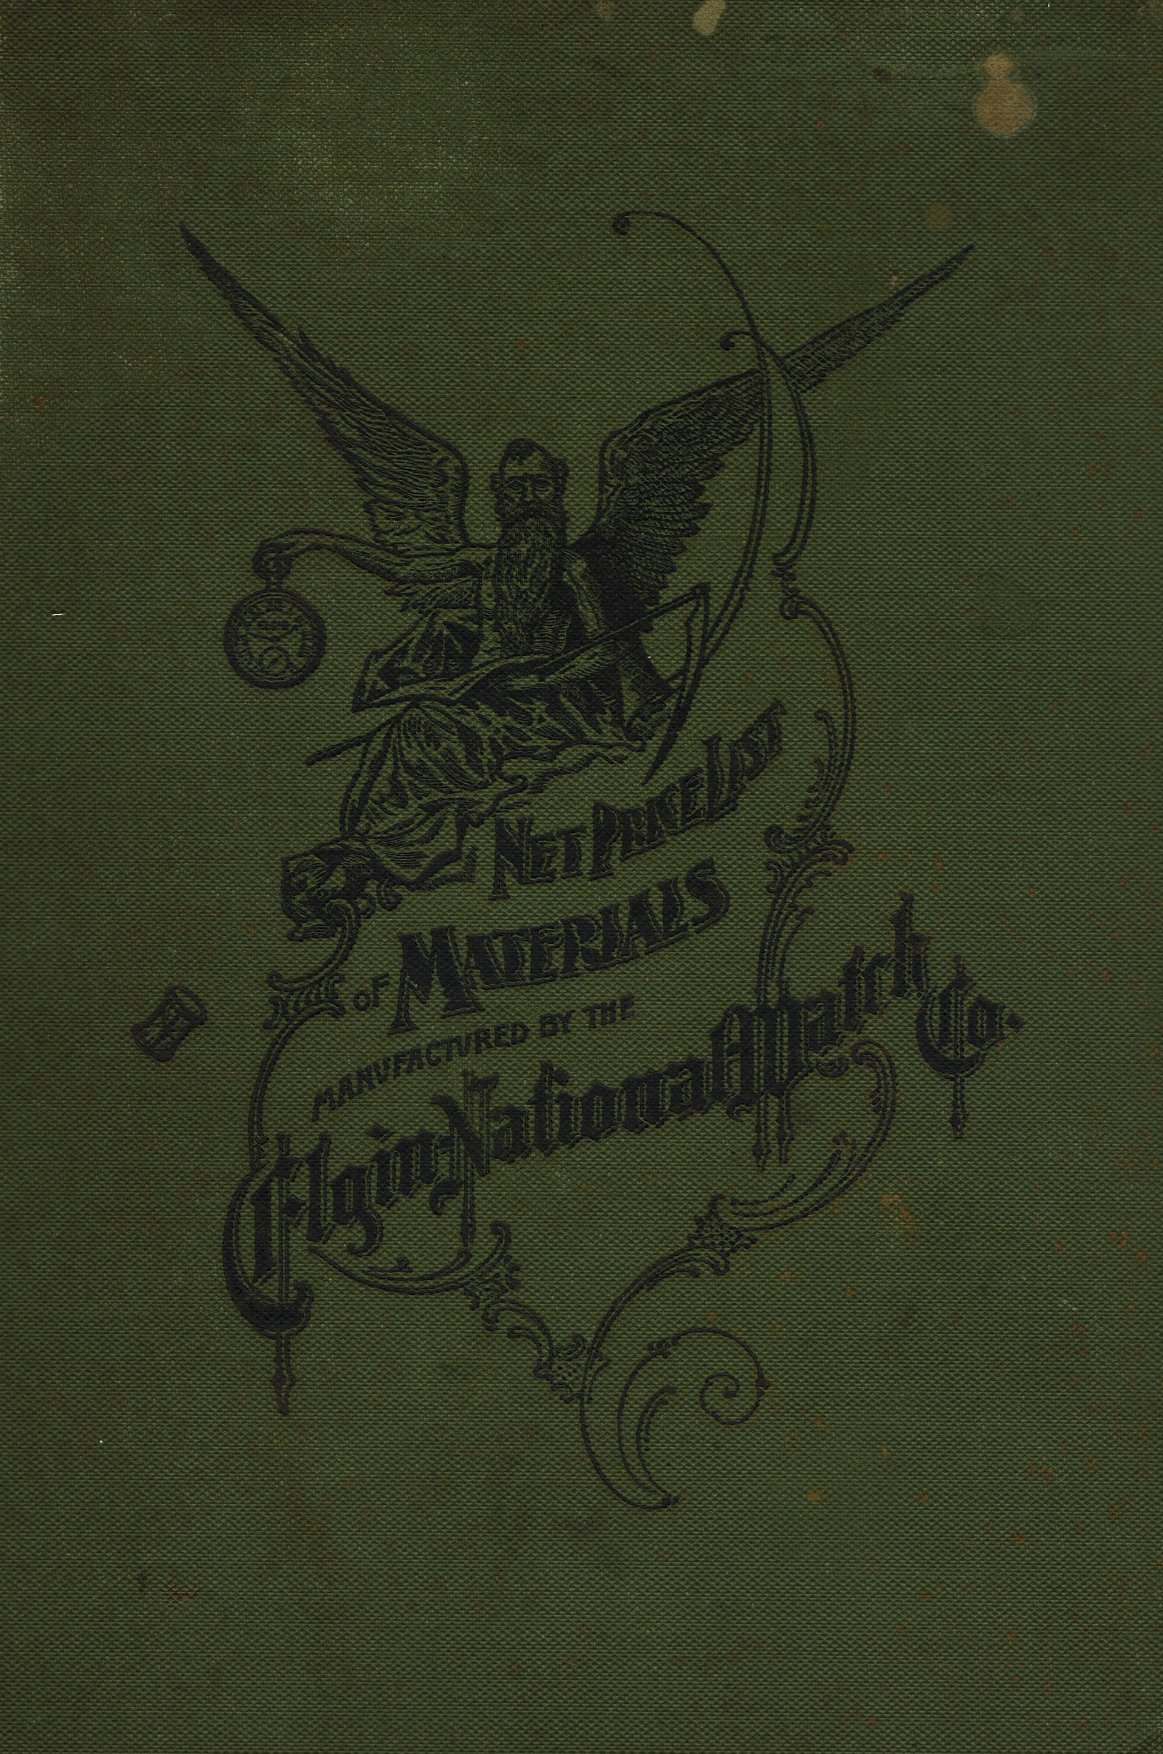 Net Price List of Materials Manufactured by the Elgin National Watch Co. (1915) Cover Image